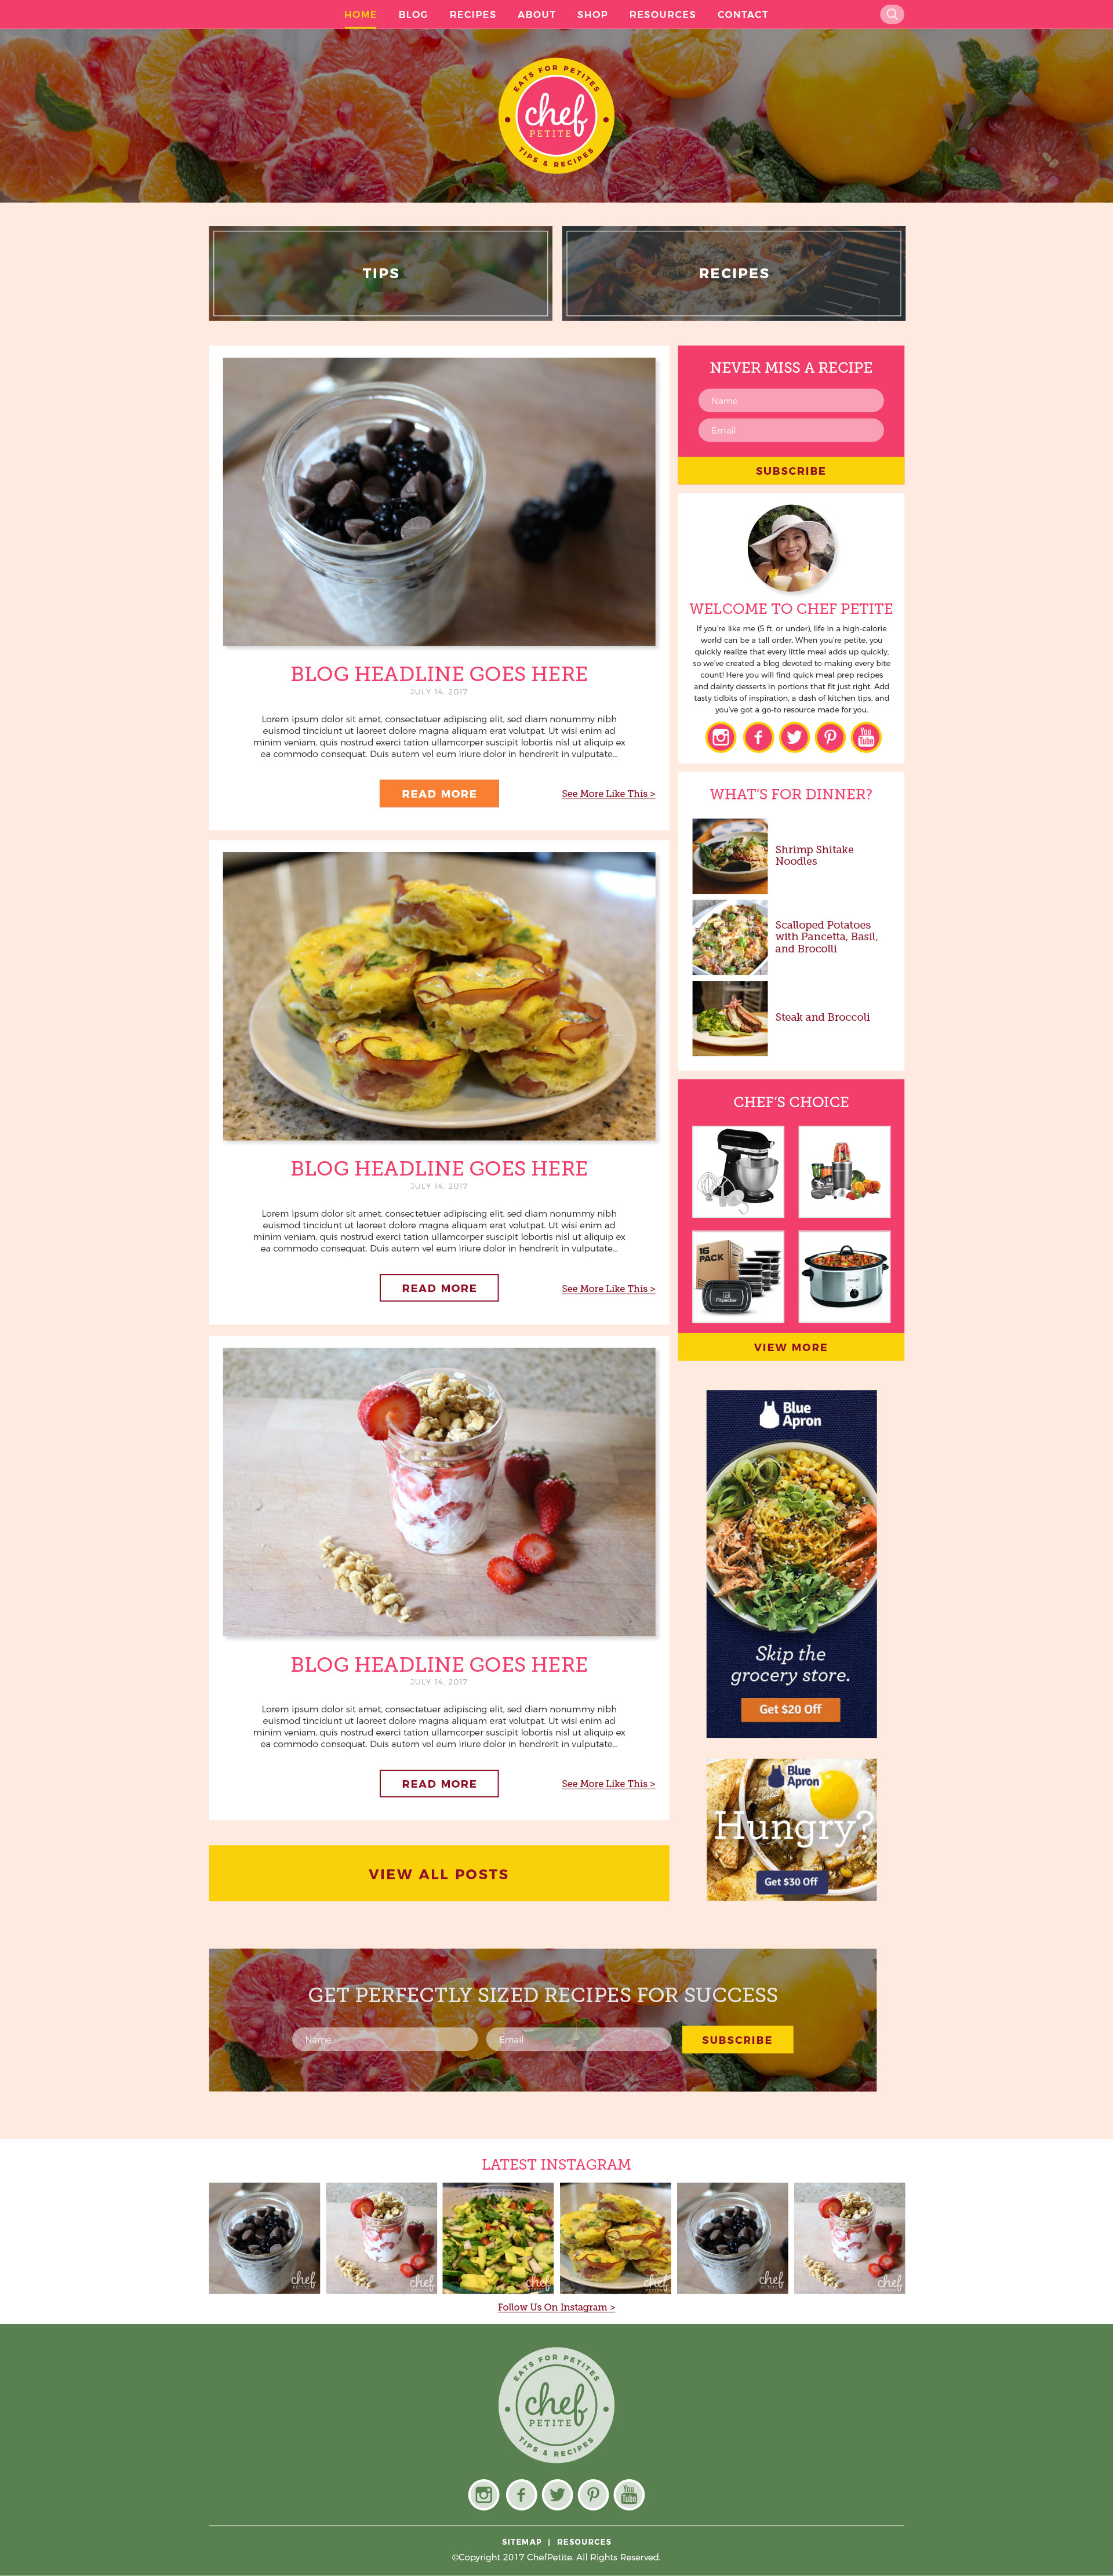 ChefPetite food blog design home page